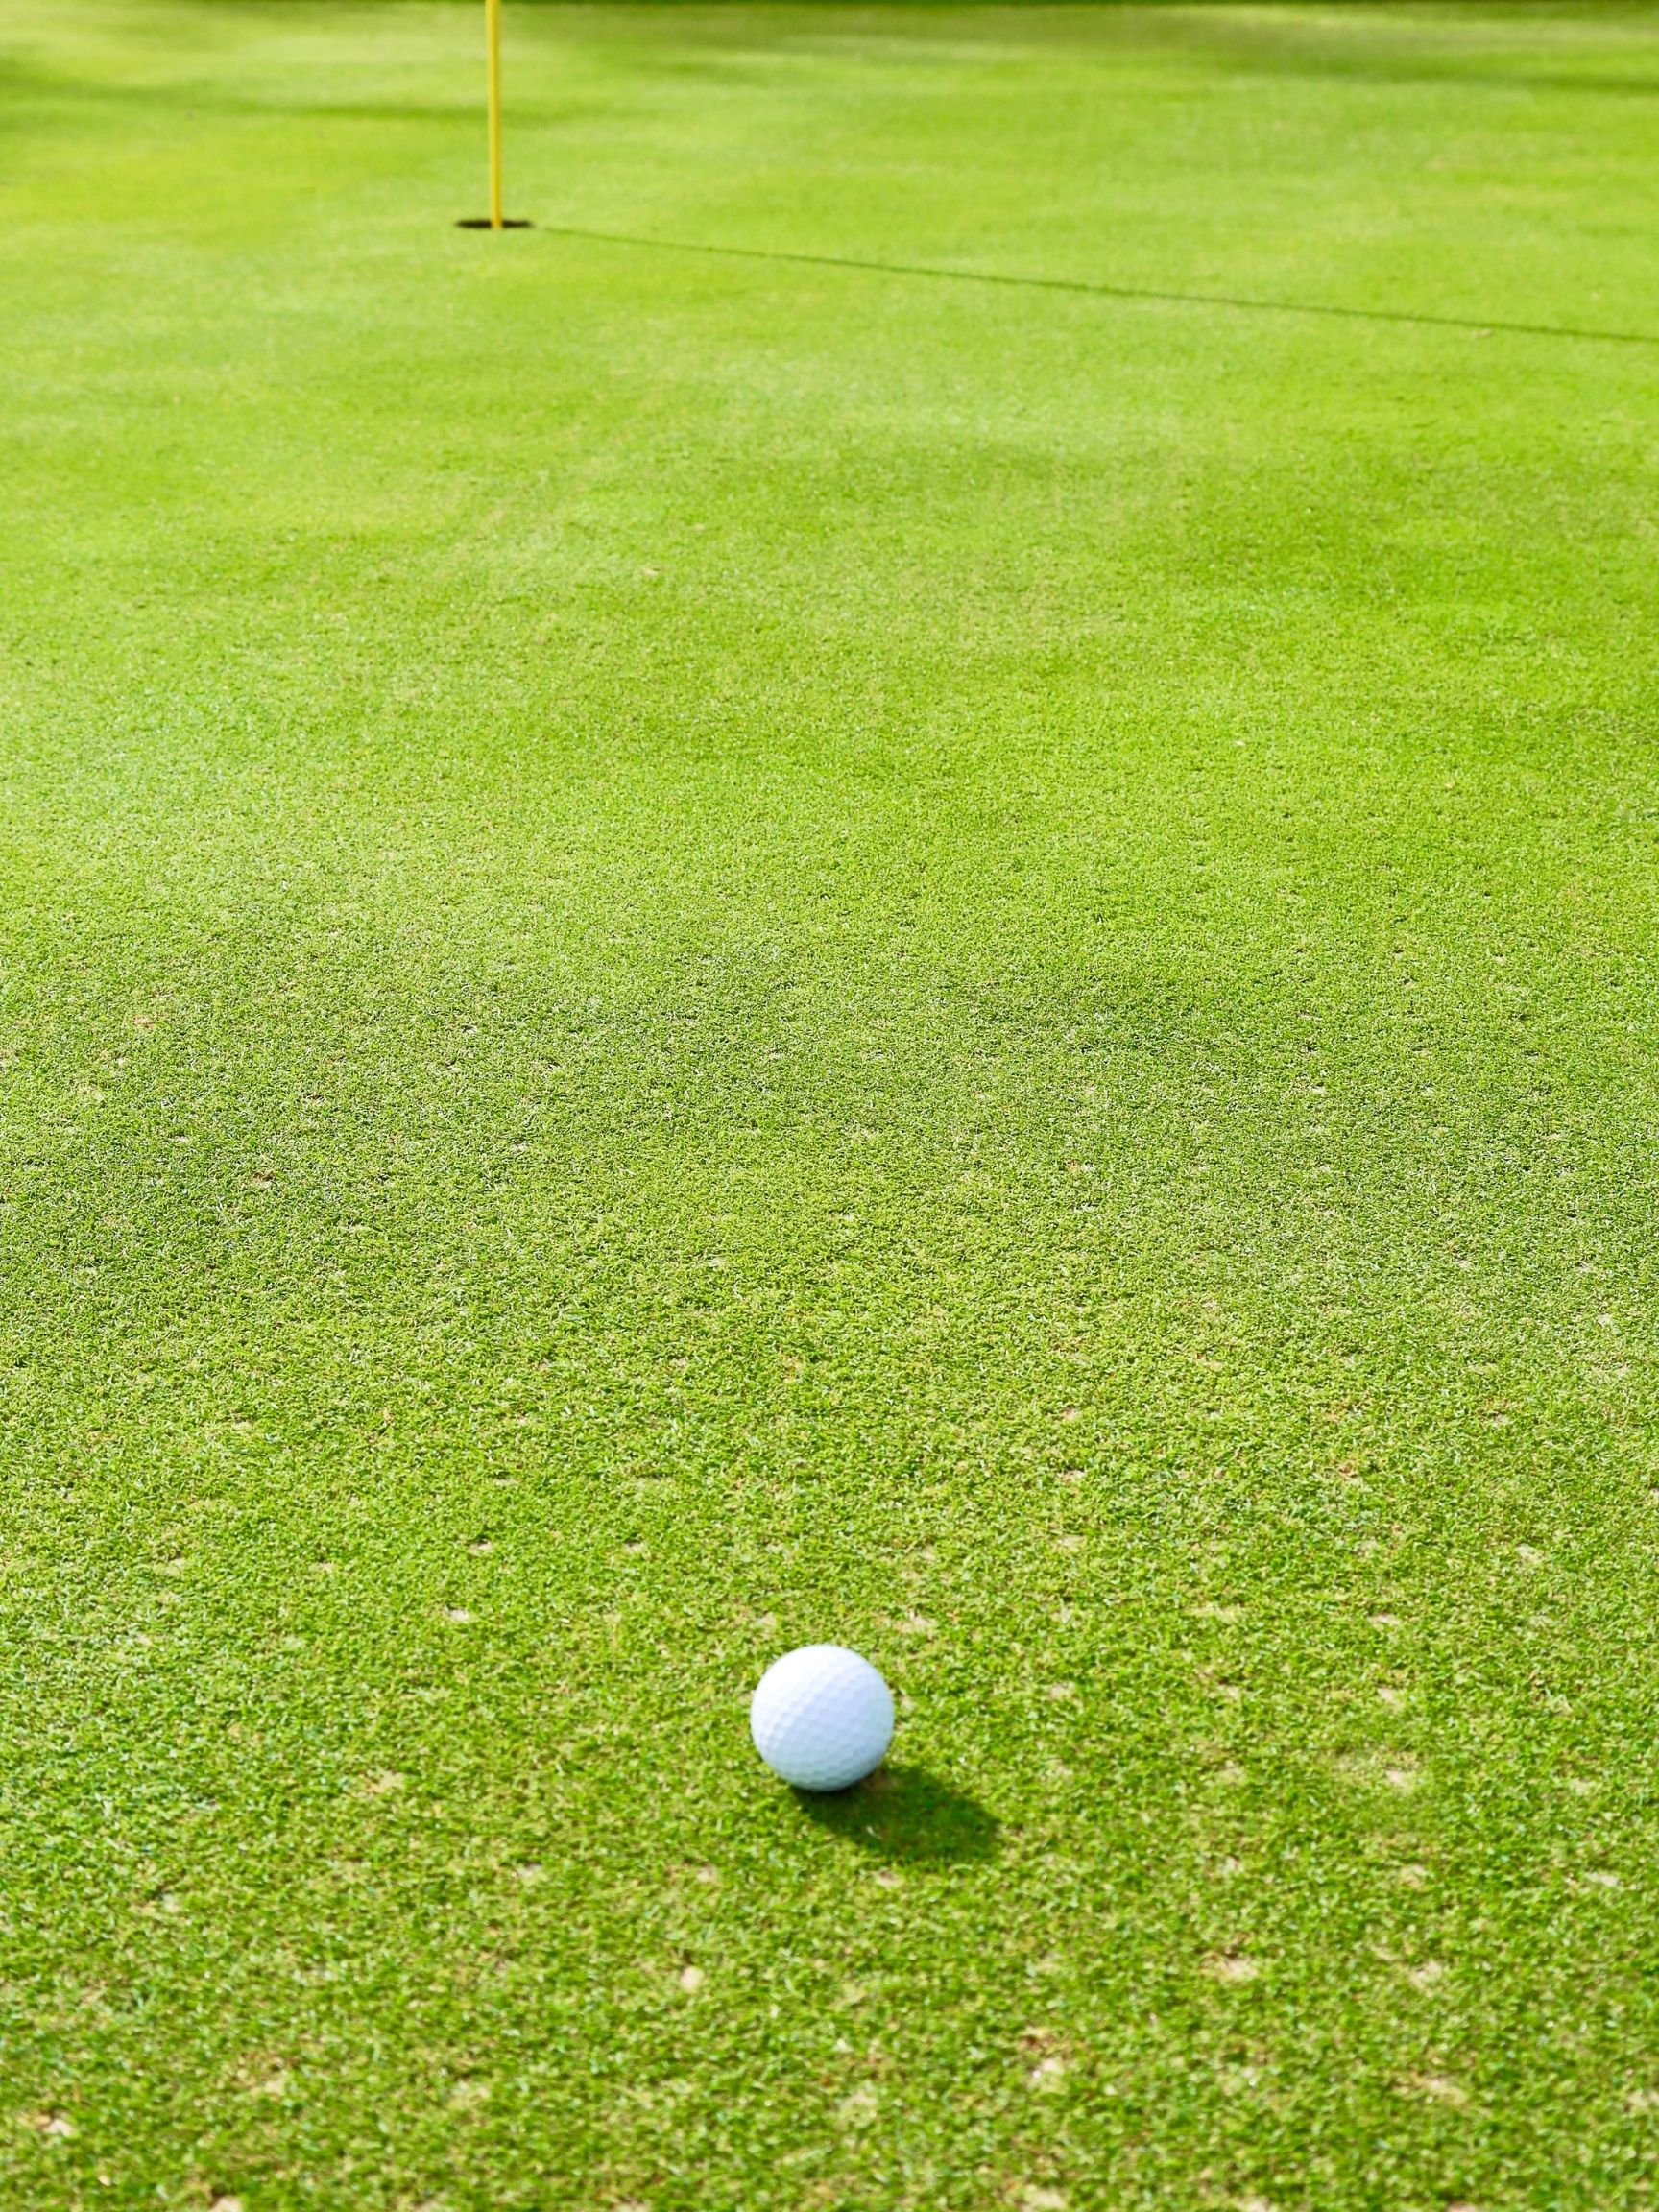 Aerating Greens with a golf ball on the ground